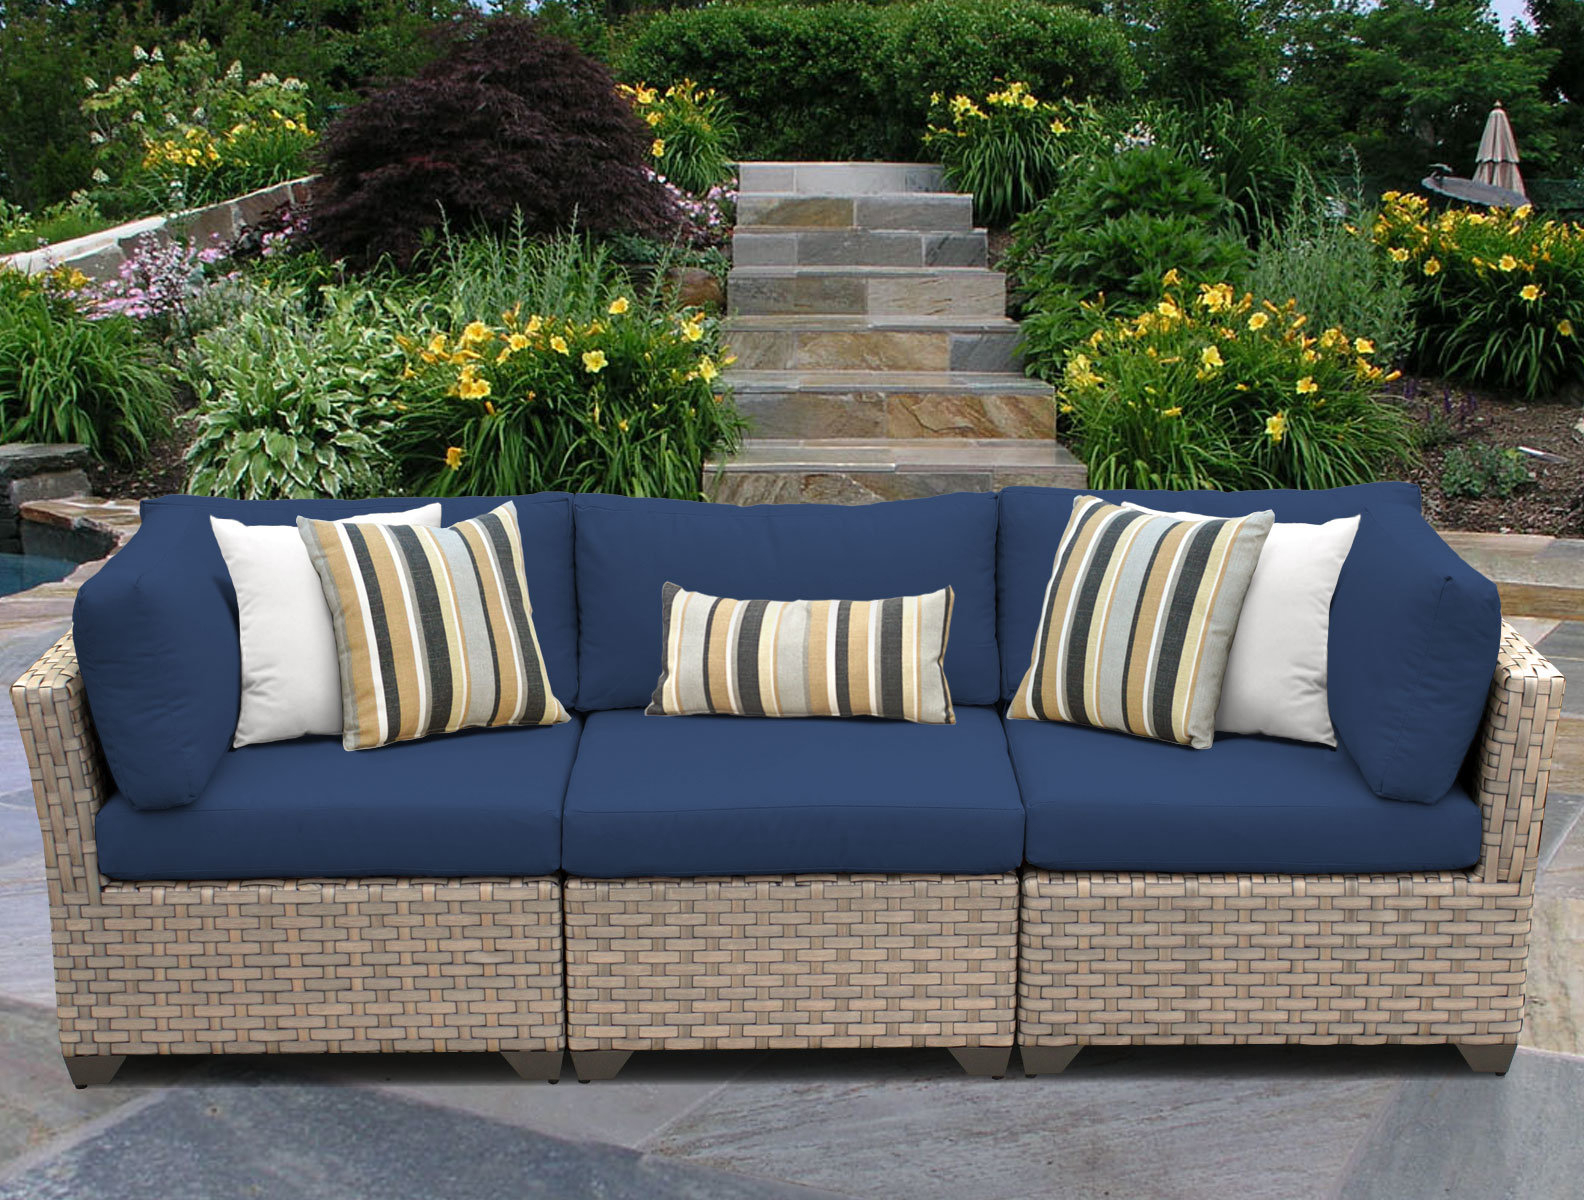 2019 Meeks Patio Sofas With Cushions Within Rochford Patio Sofa With Cushions (Gallery 6 of 20)